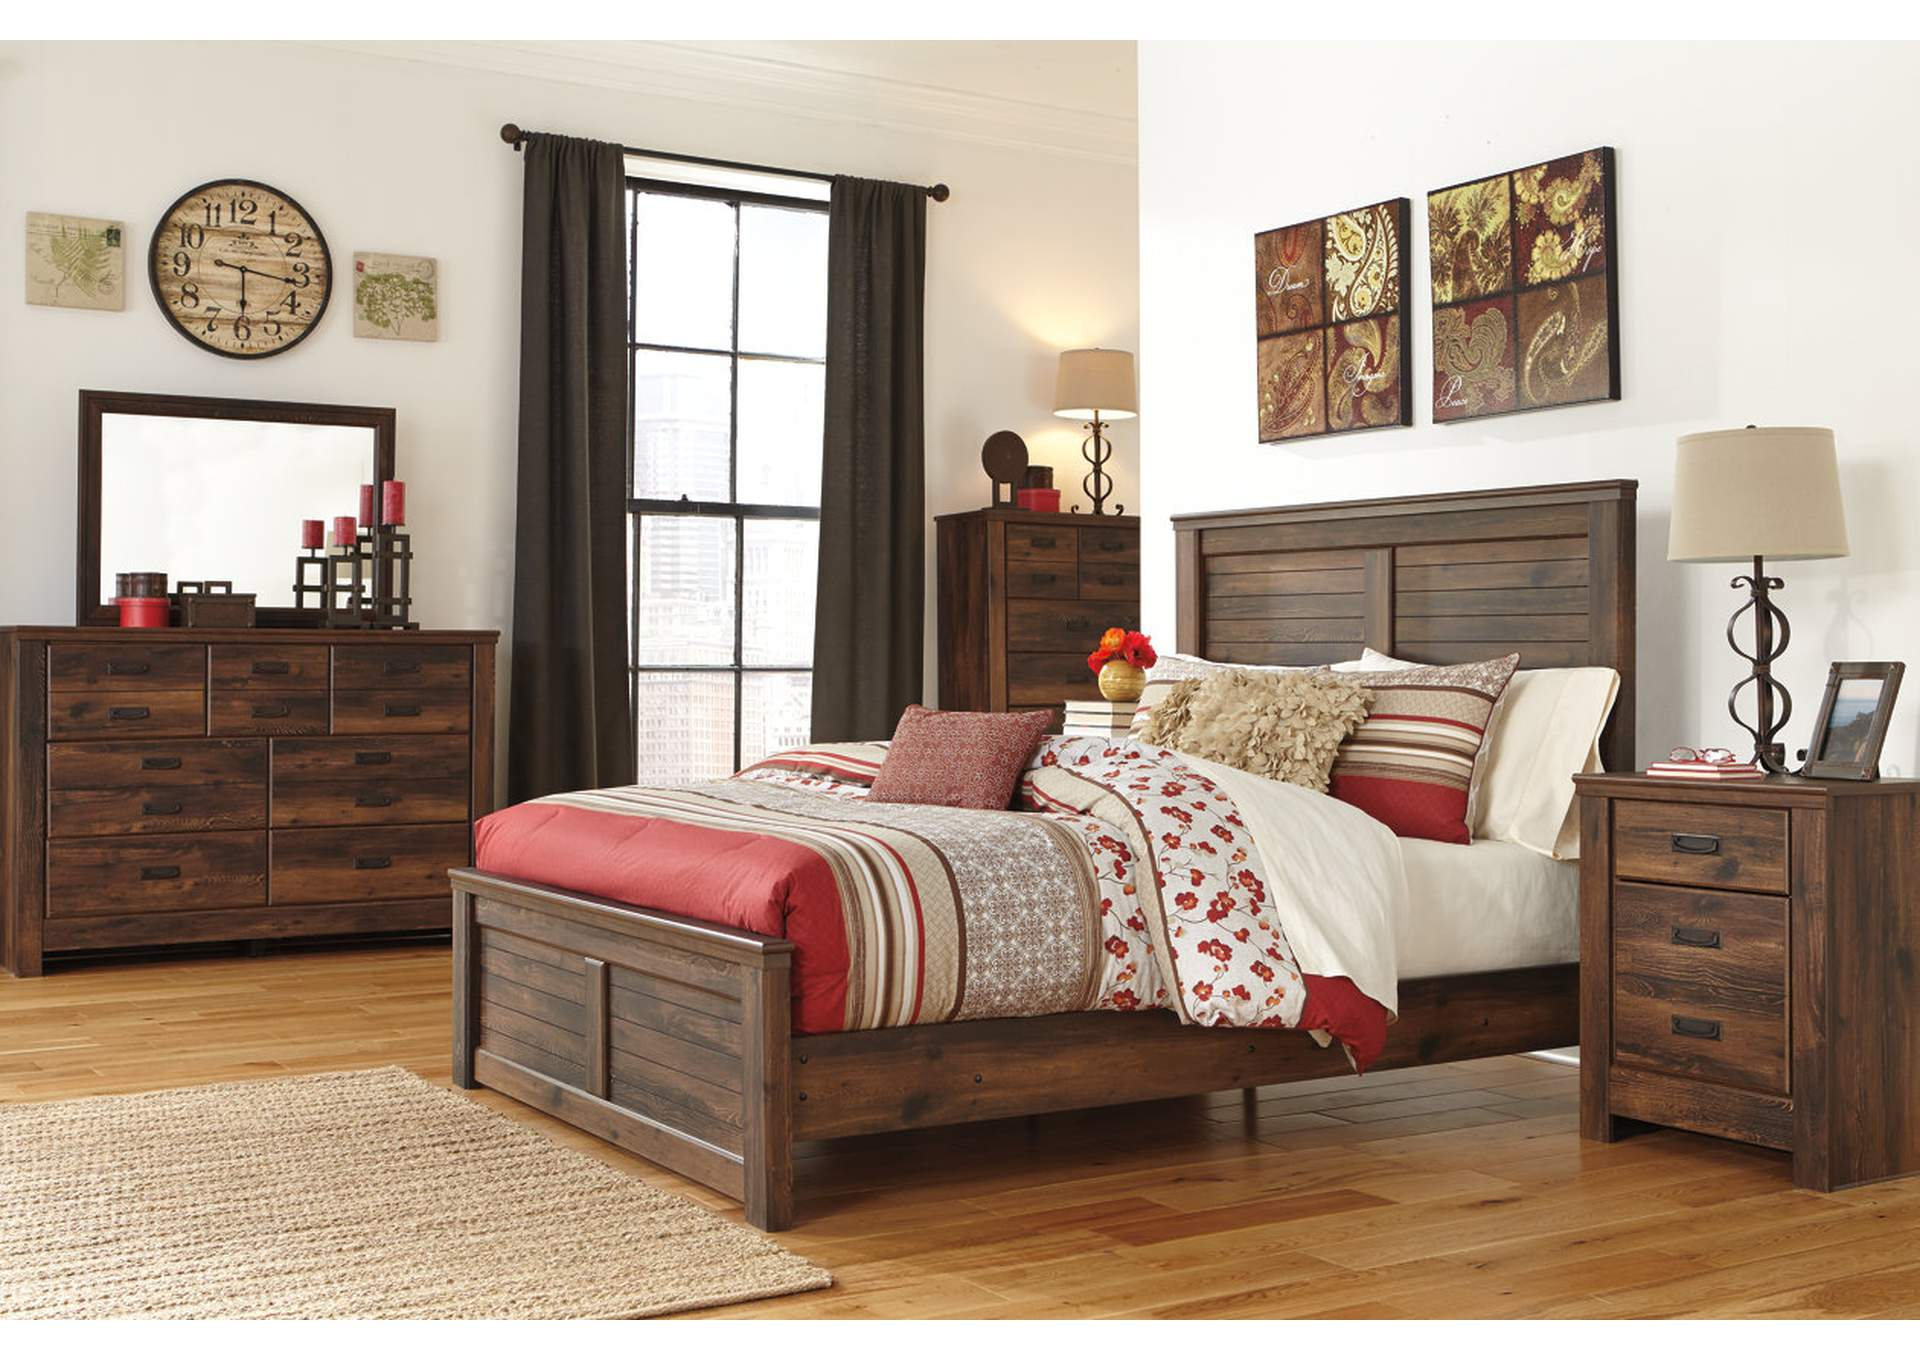 Quinden King Panel Bed w/Dresser, Mirror & Drawer Chest,Signature Design By Ashley